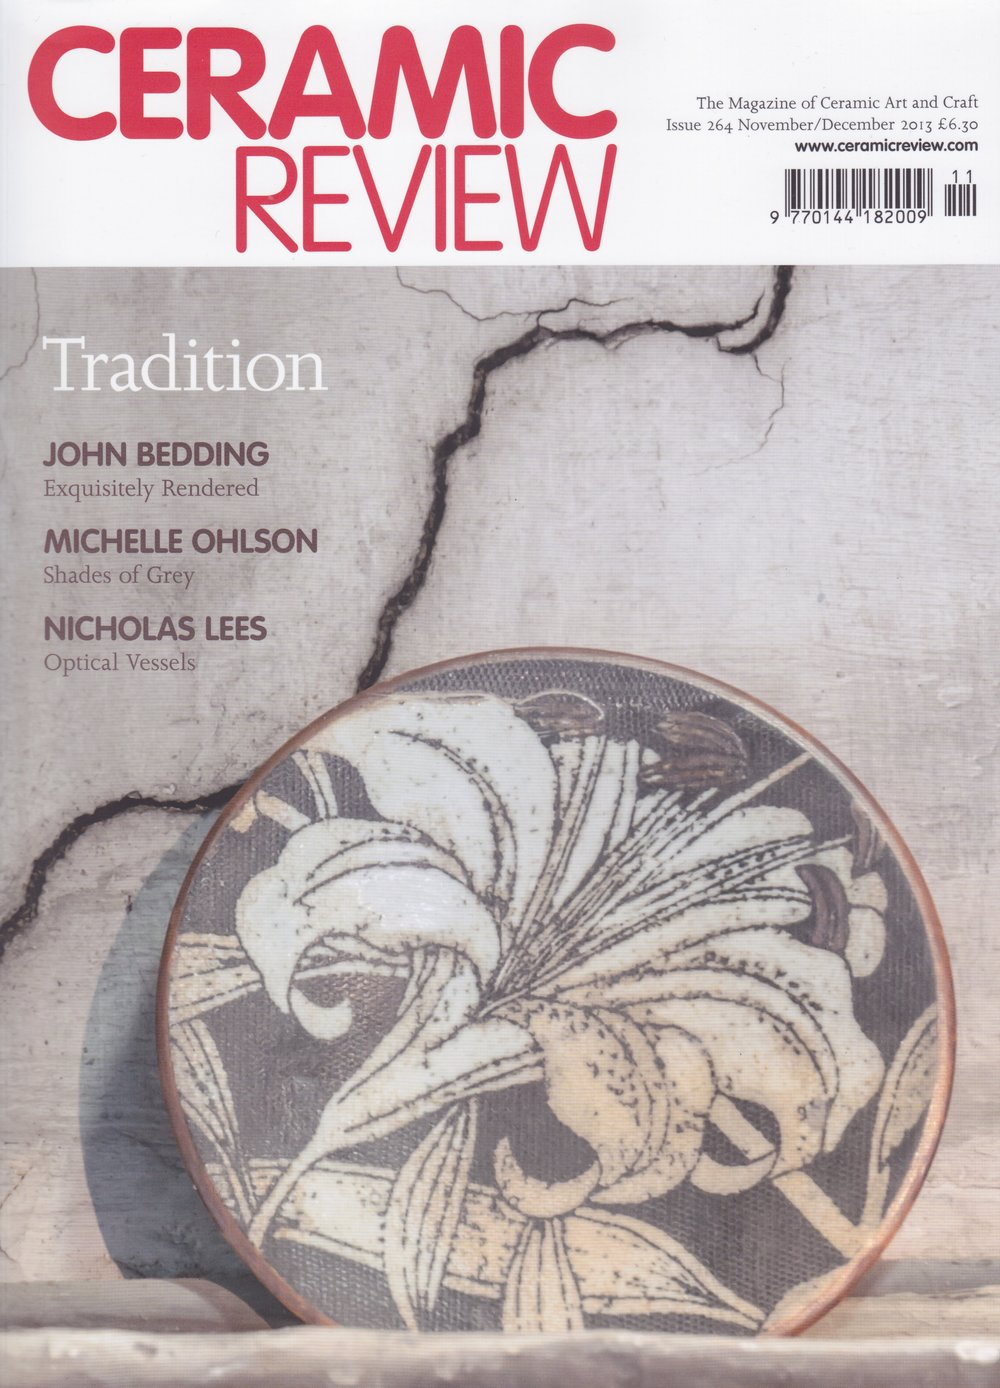 2013 Nov_Dec Ceramic Review Cover.jpeg